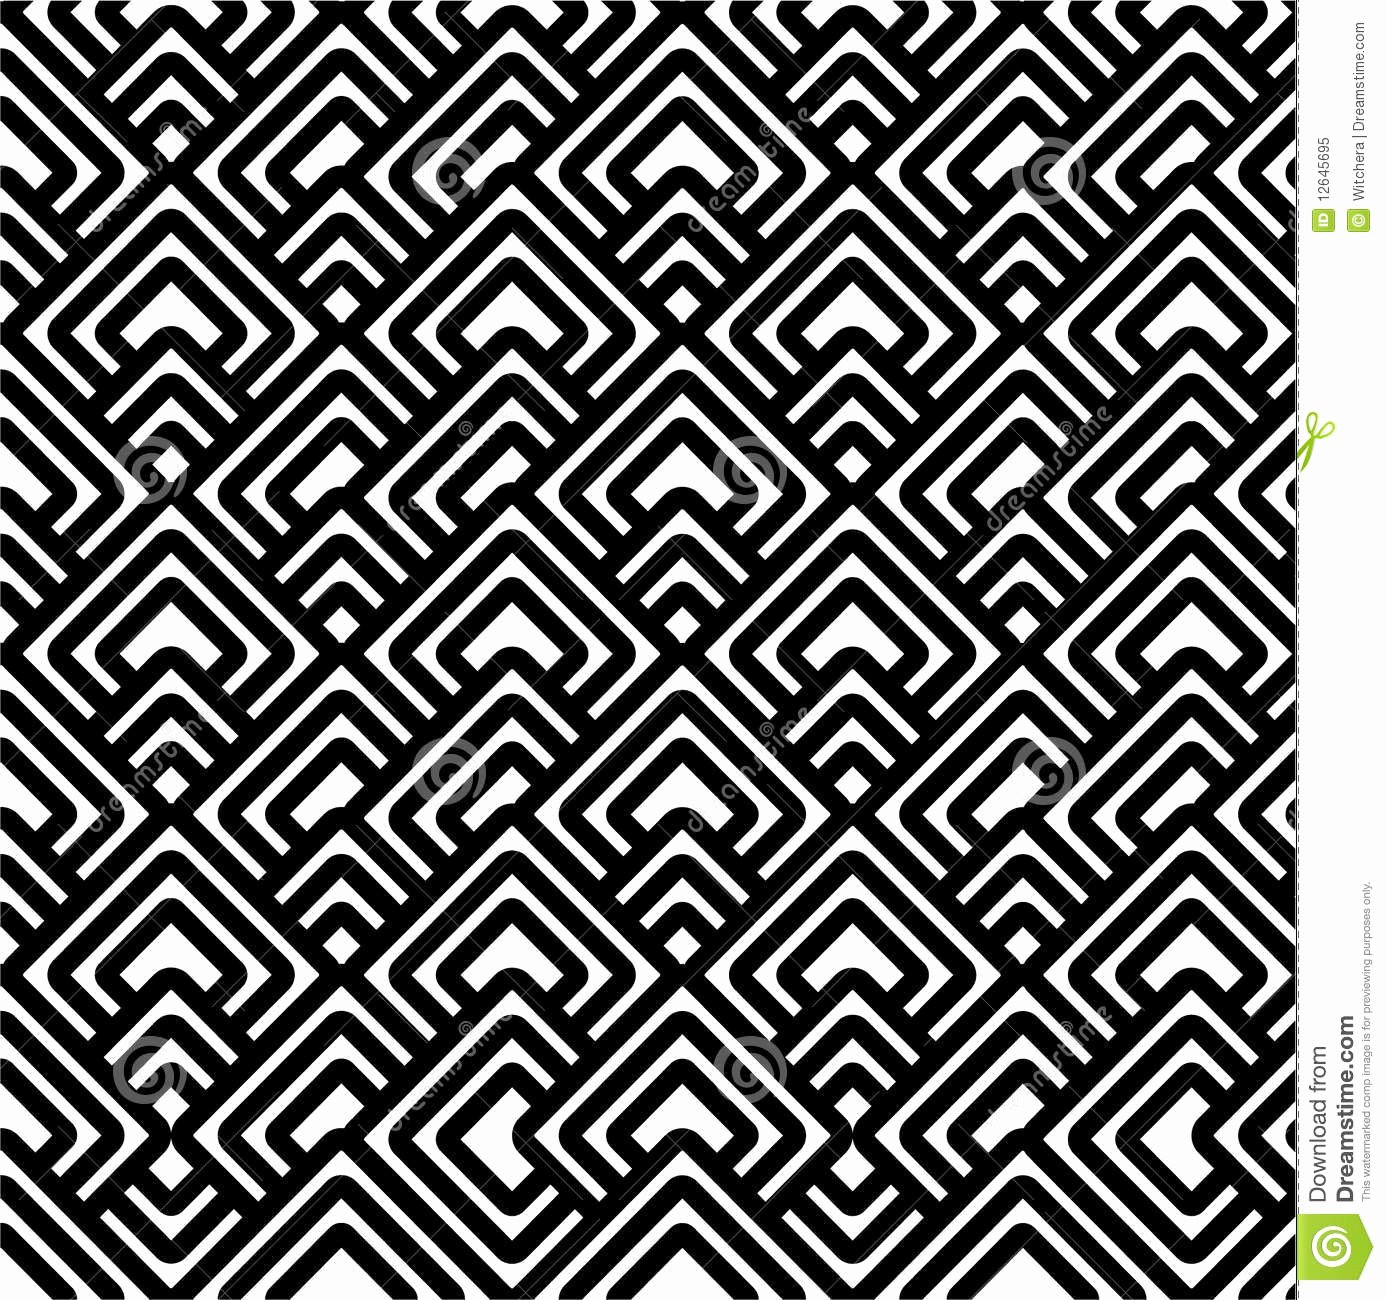 Black and White Pattern Inspirational 25 Unique Black and White Patterns – themes Pany – Design Concepts for Life